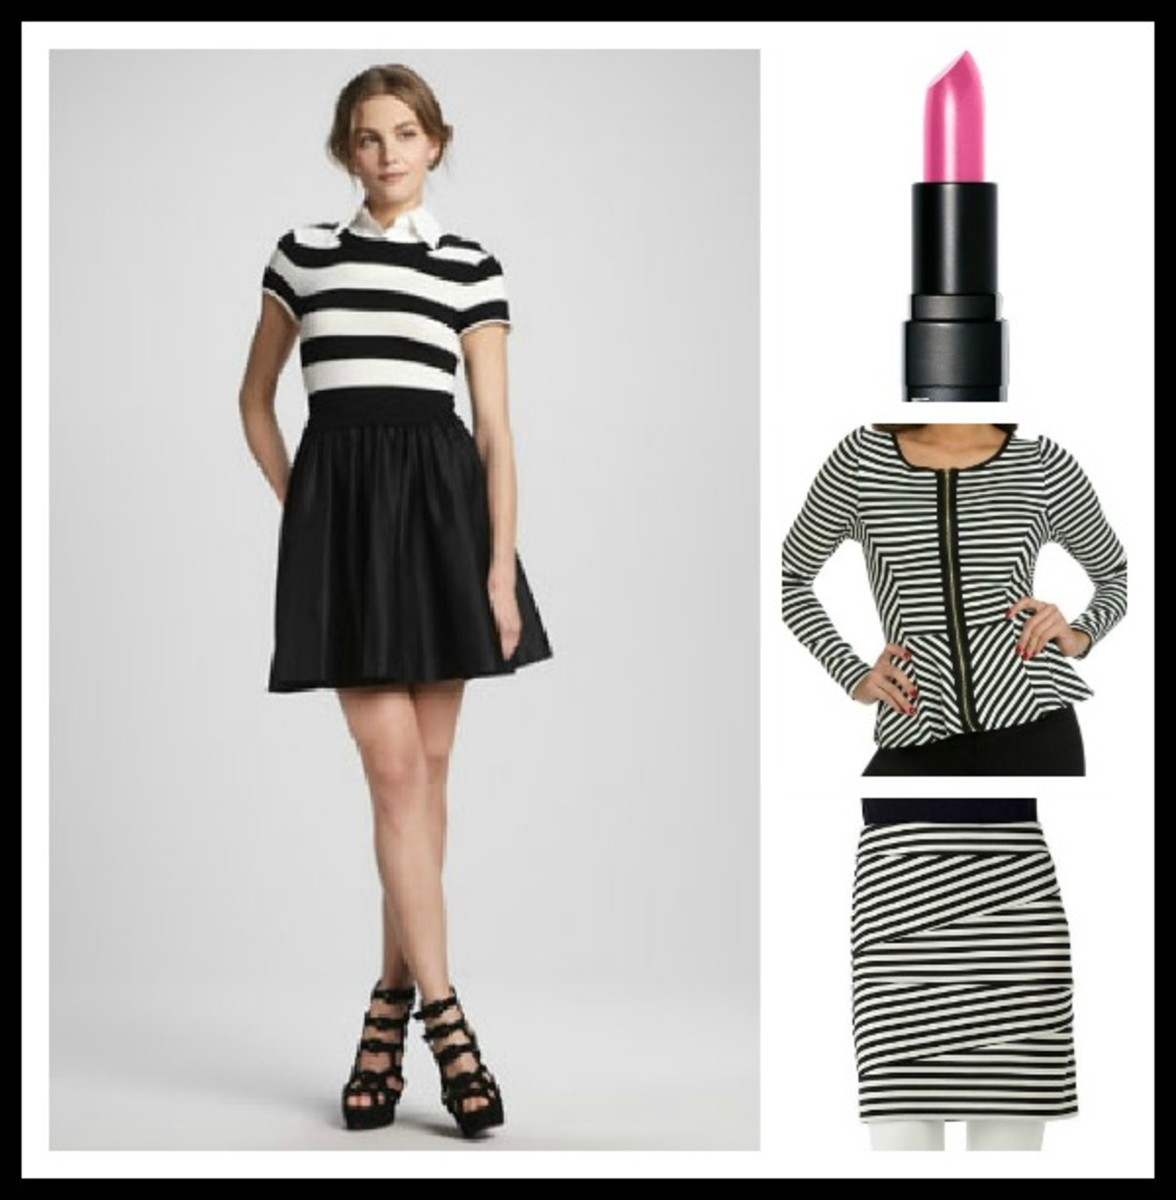 stripes, black and white, spring 2013 fashion trends, black and white stripes